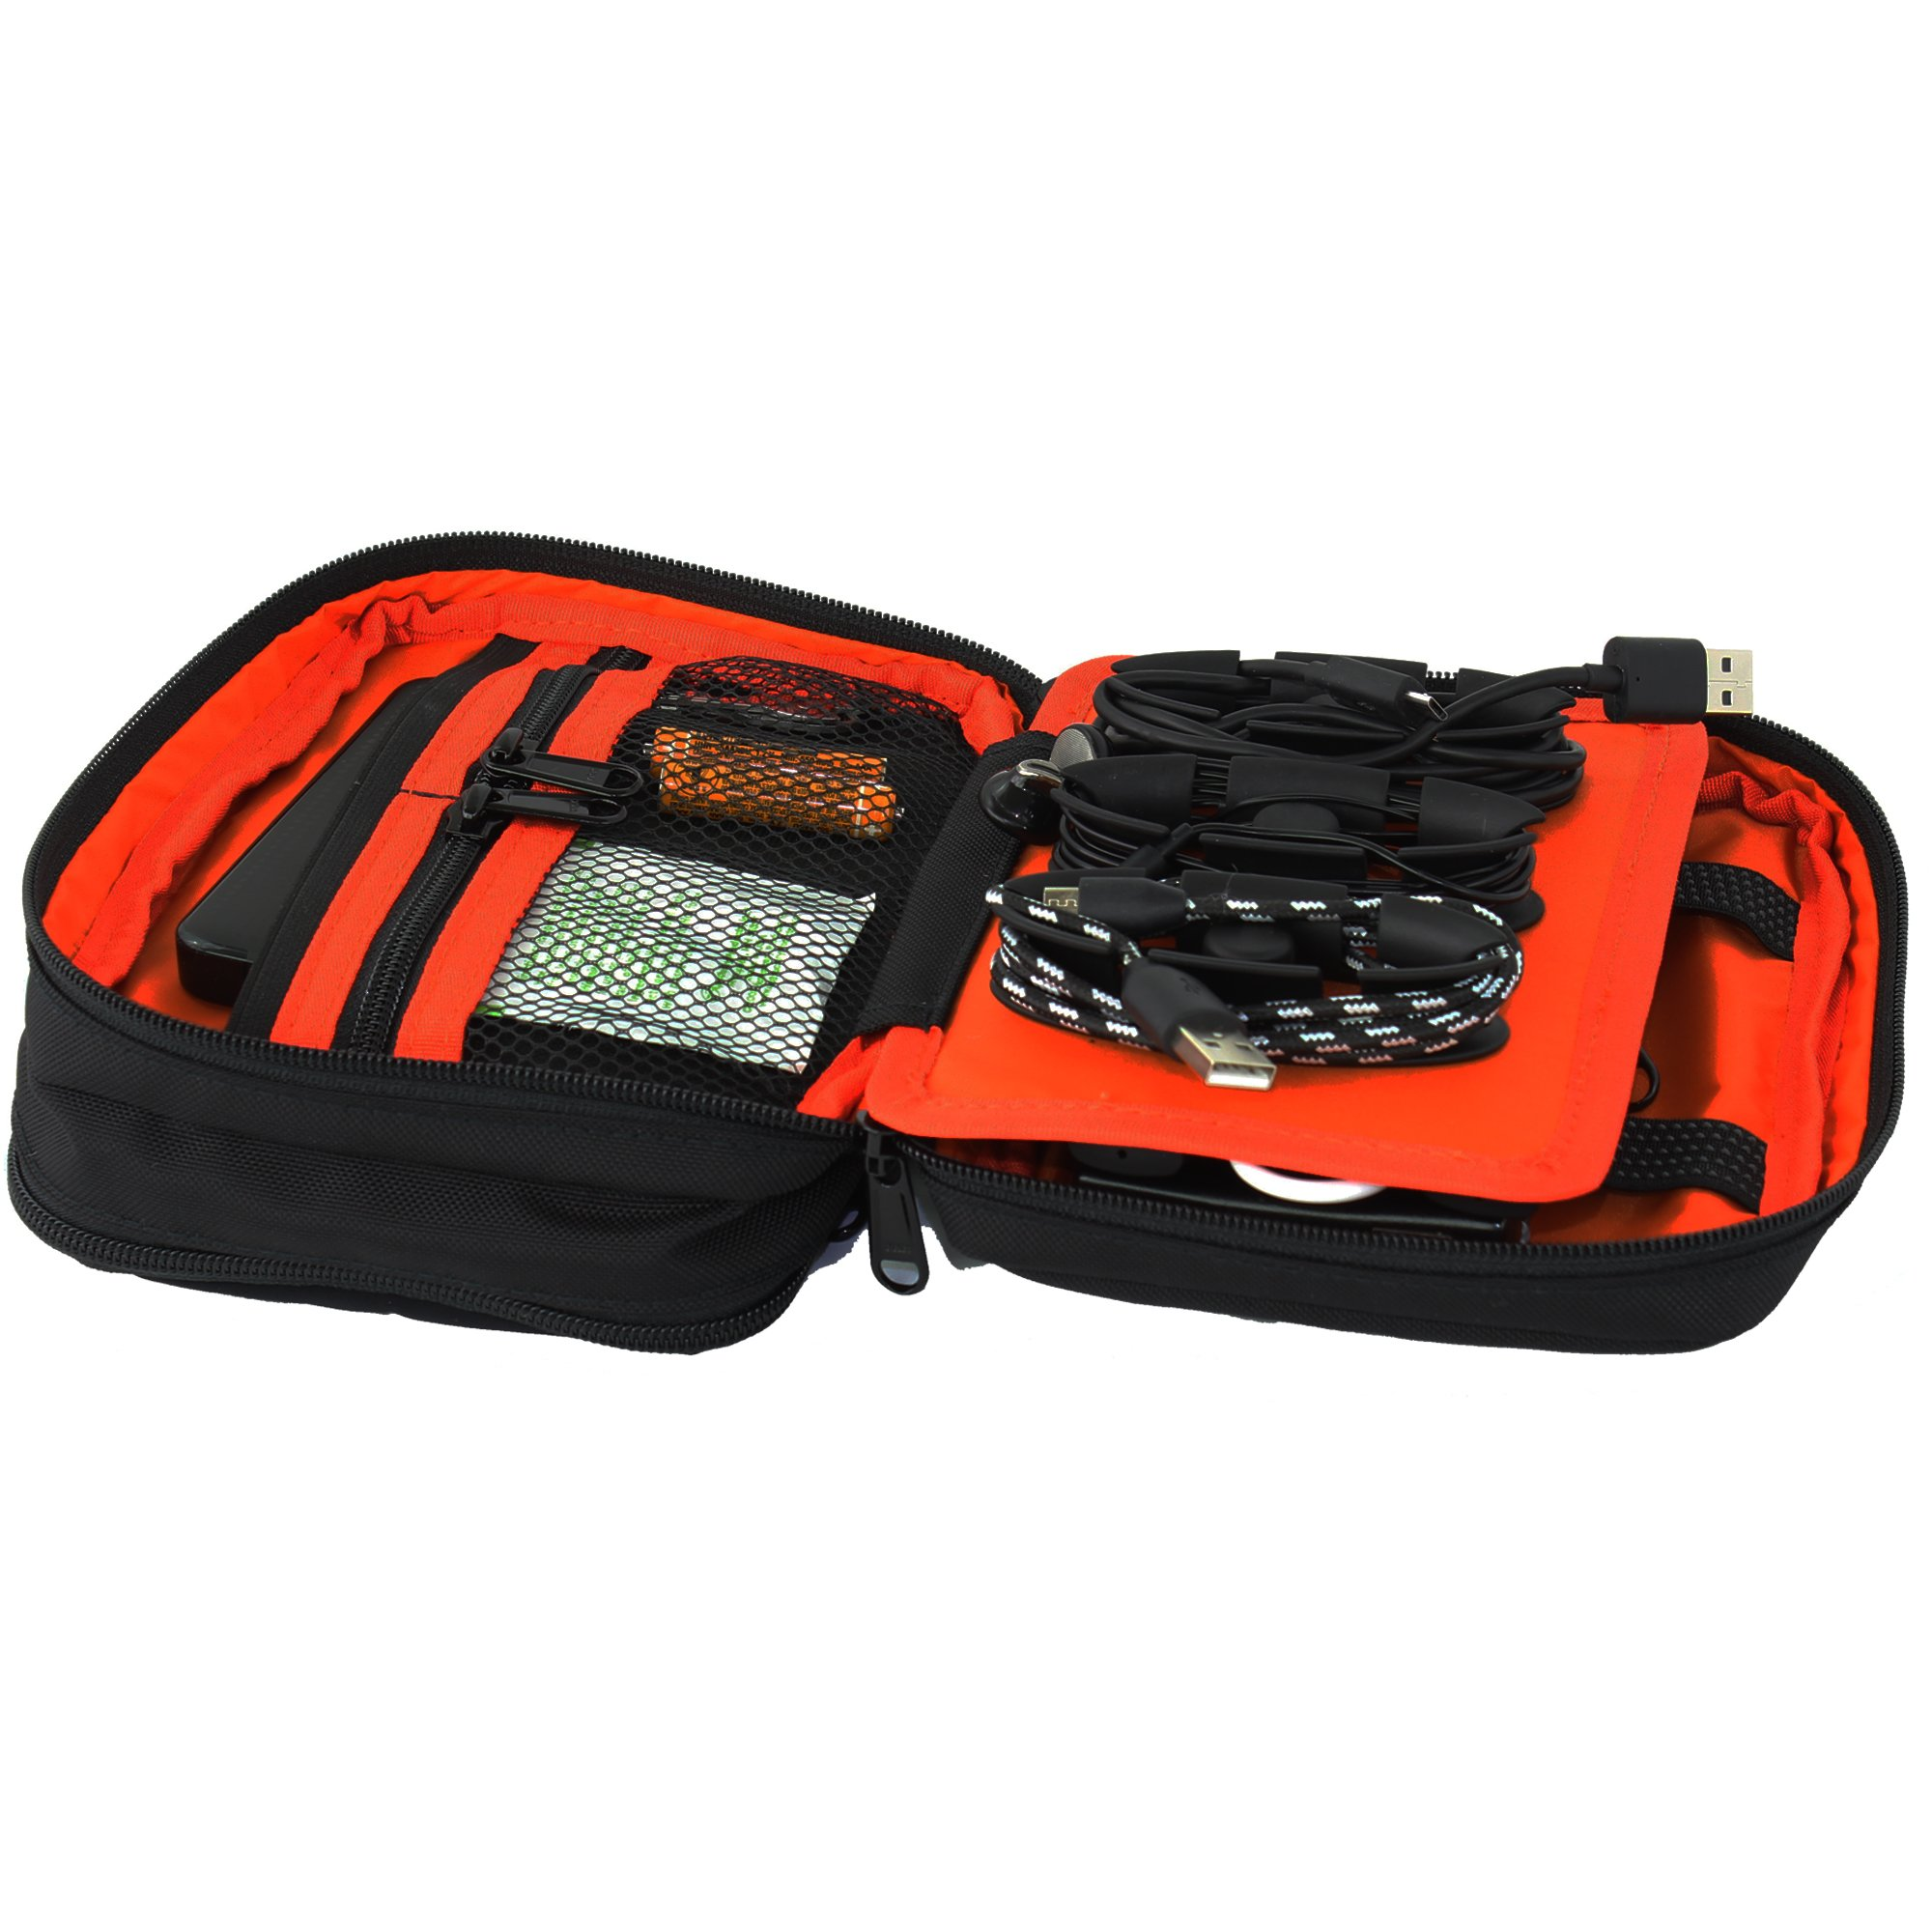 Taskin Stash Electronics Organizer Travel Bag with Magnetic Cable Clips